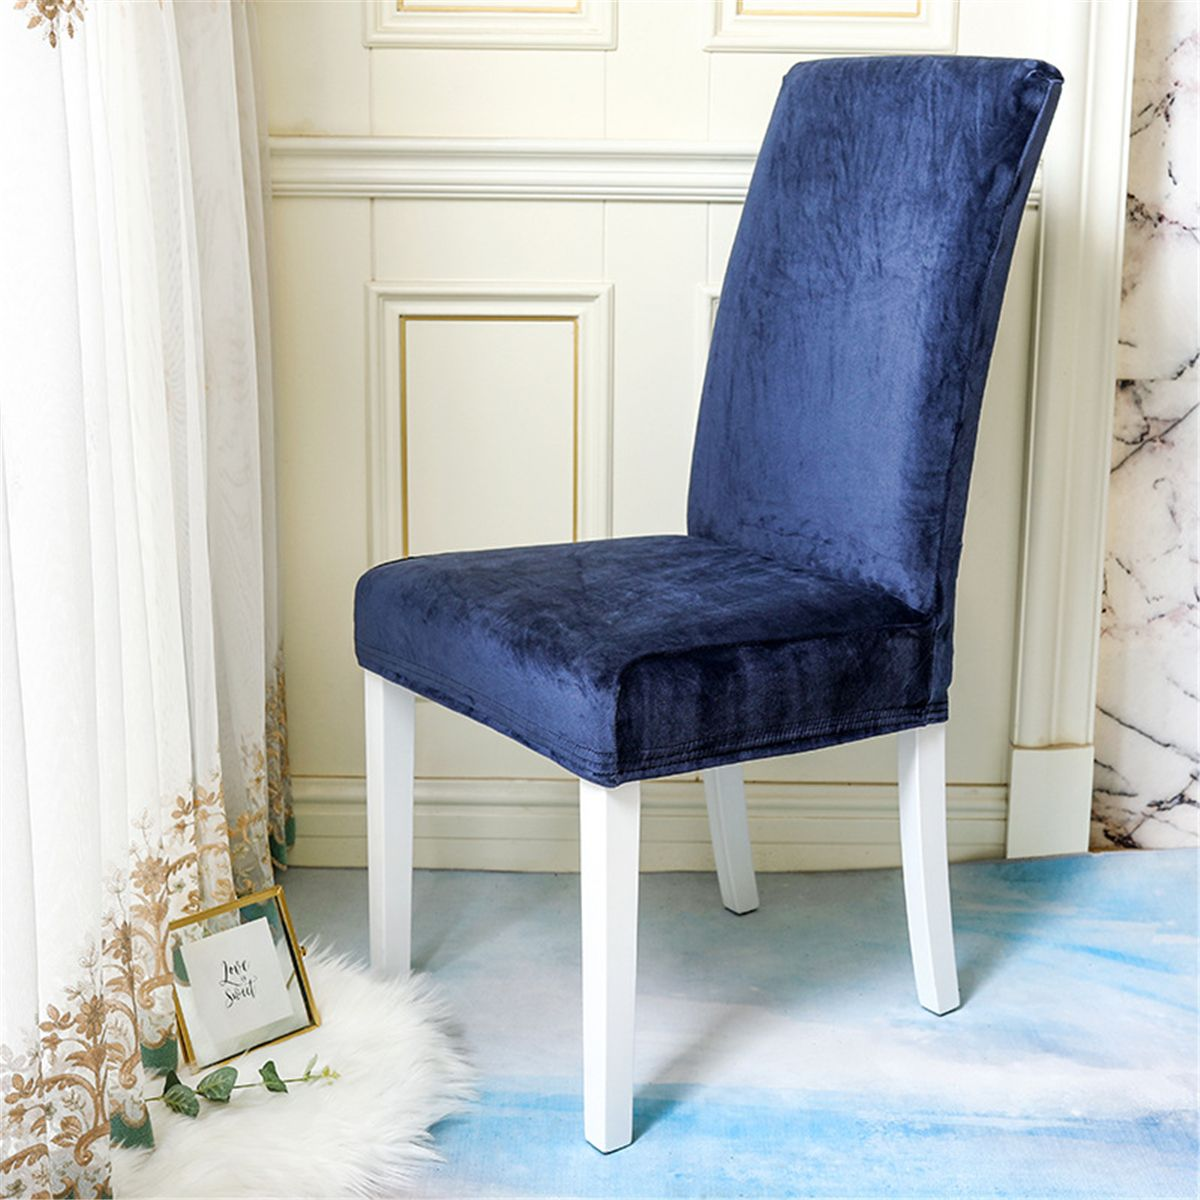 Stretch Dining Chair Covers Washable Slipcovers Walmart Canada In 2021